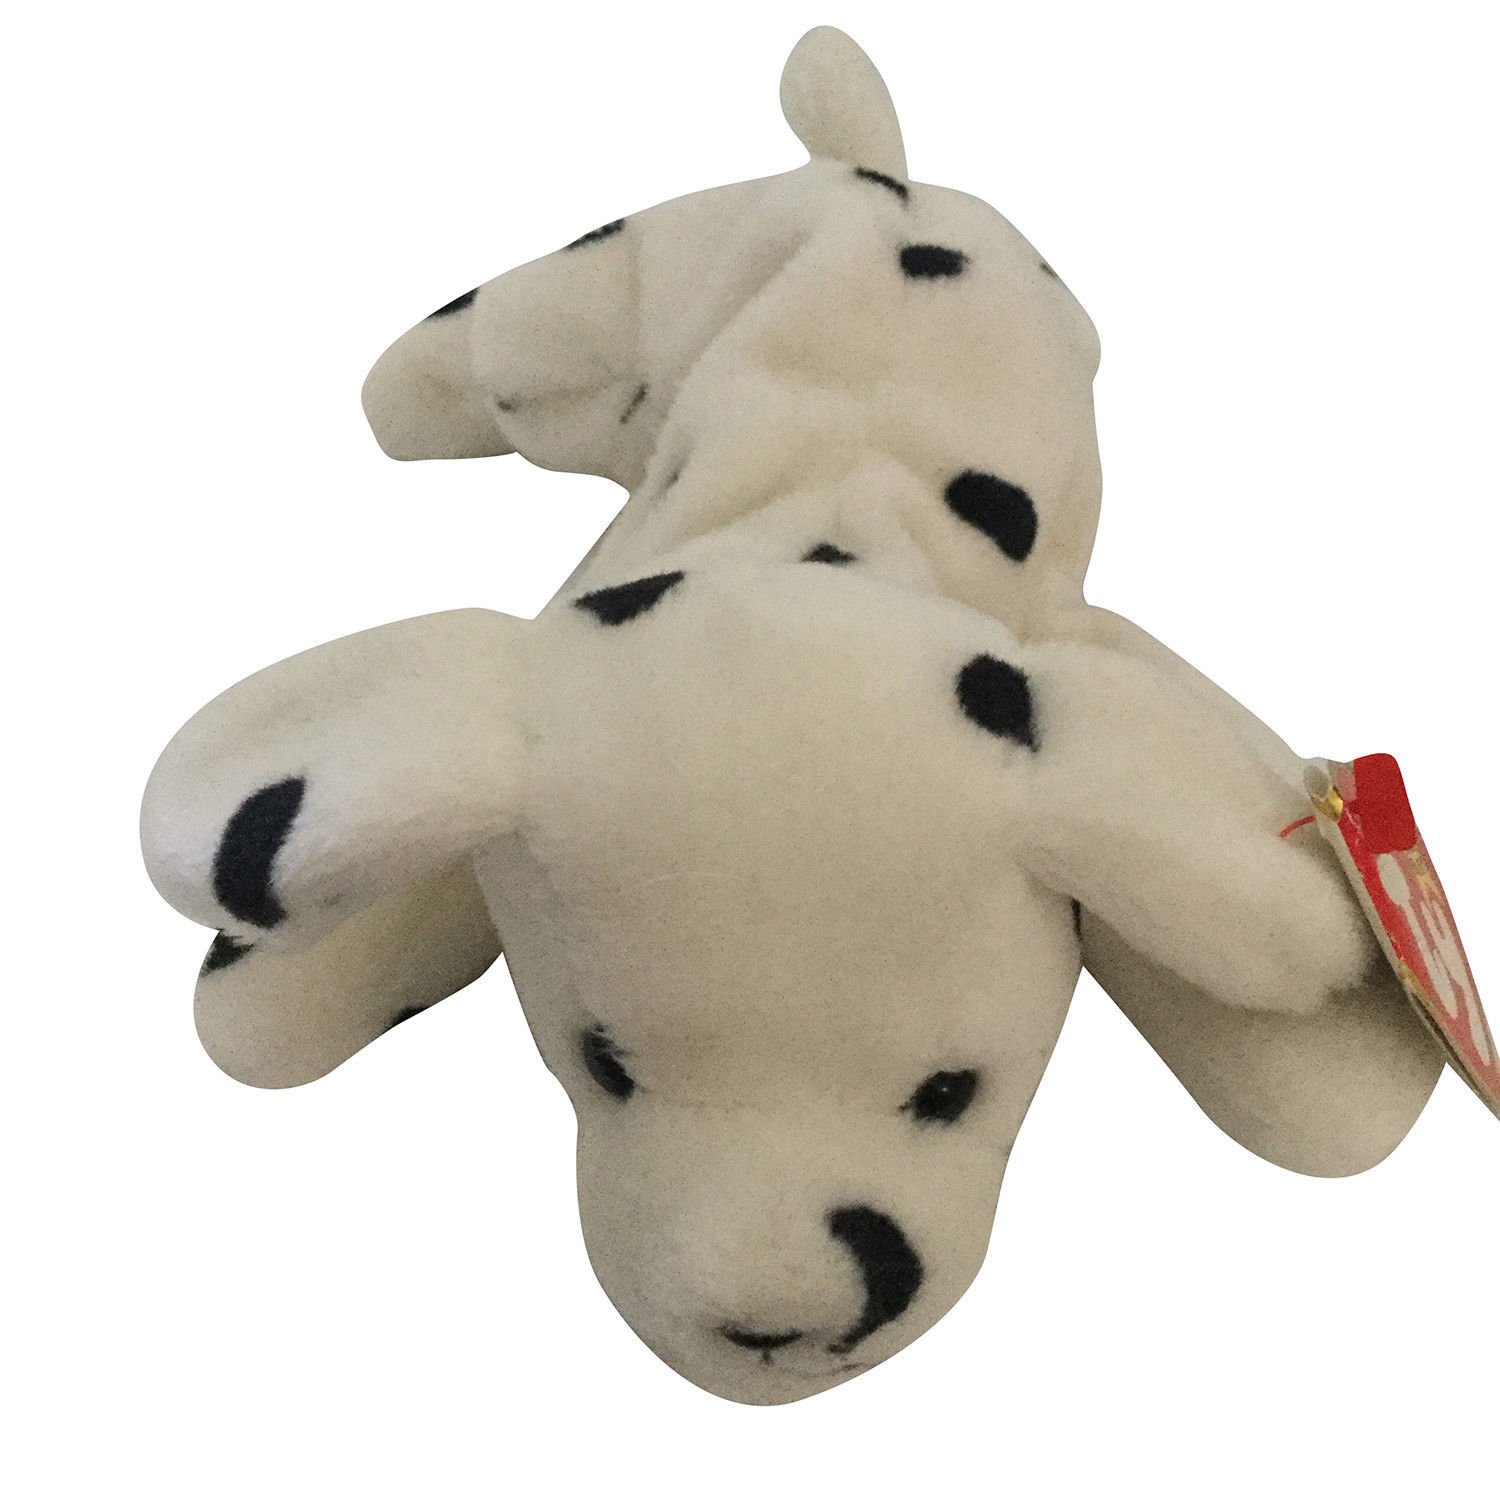 8e0a3002f82 Retired TY Beanie Babies Sparky the and similar items. S l1600